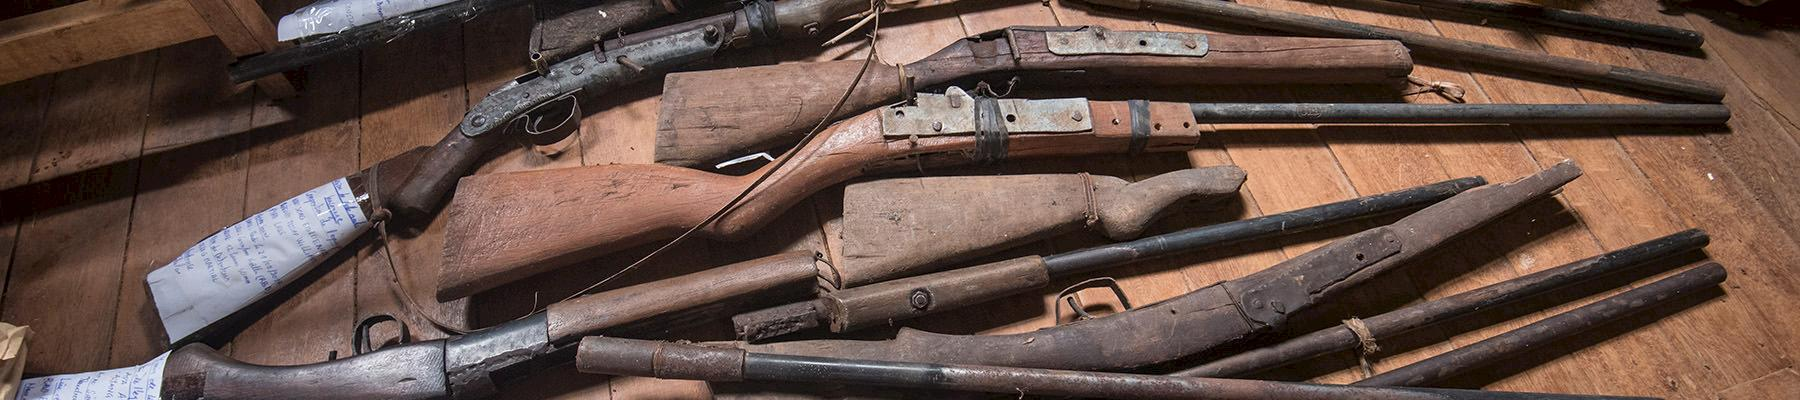 Homemade firearms seized from poachers in Dja National Park, Cameroon © A. Walmsley / TRAFFIC